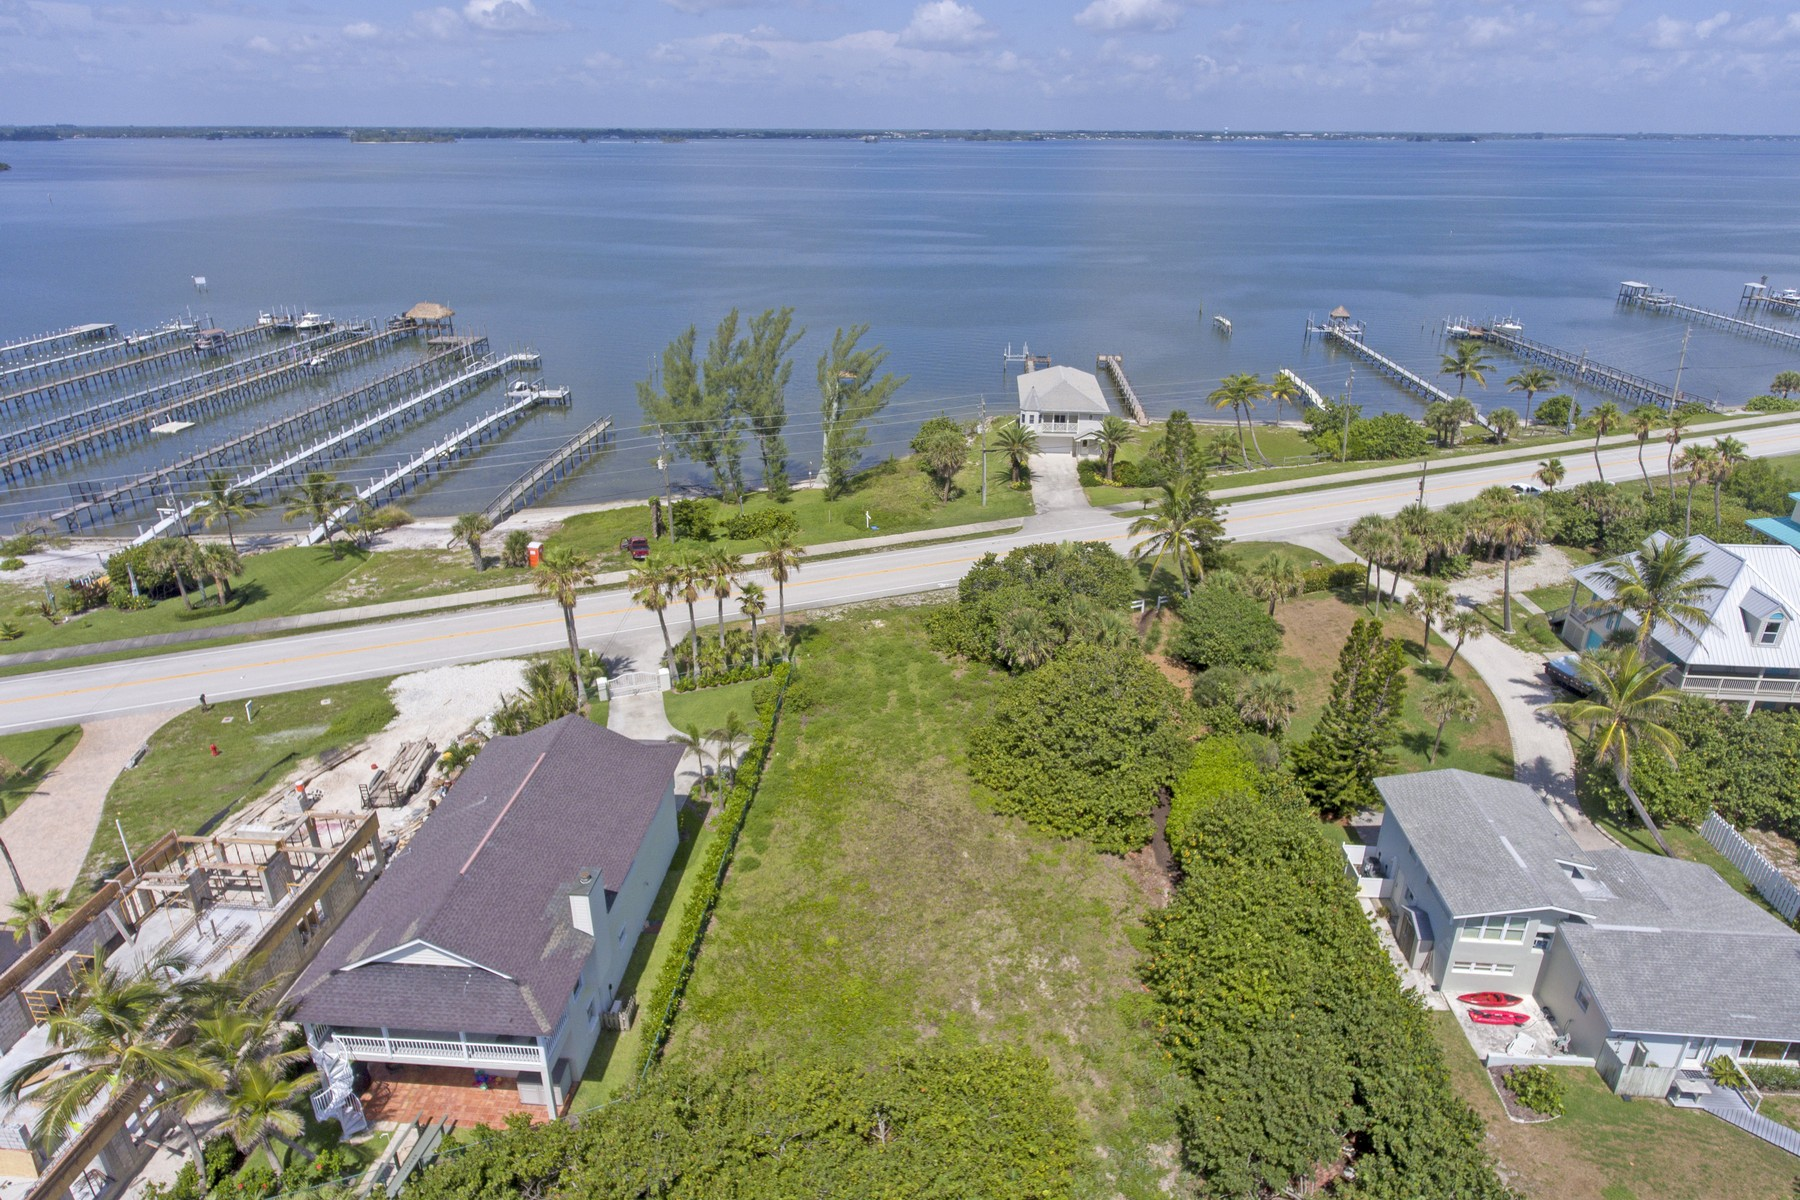 Property için Satış at This Ocean to River Homesite is a Treasure Hunter's Dream! 12810 Highway A1A Vero Beach, Florida 32963 Amerika Birleşik Devletleri